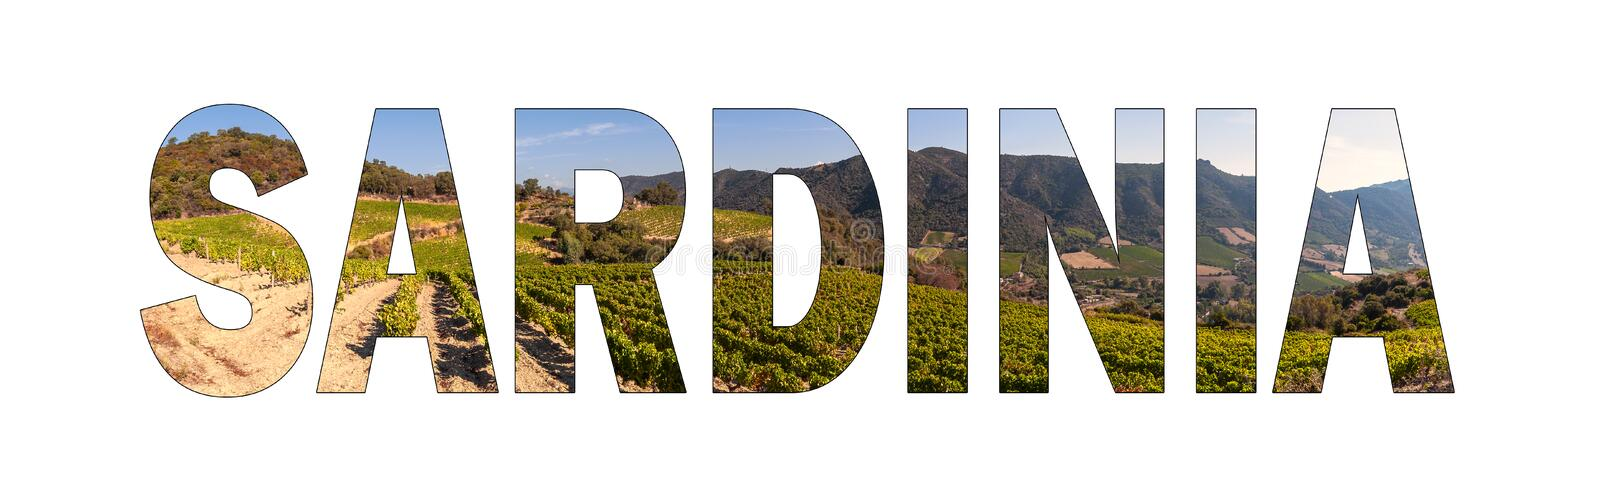 Written SARDINIA background with a hillside vineyard in Sardinia, Italy. royalty free stock images